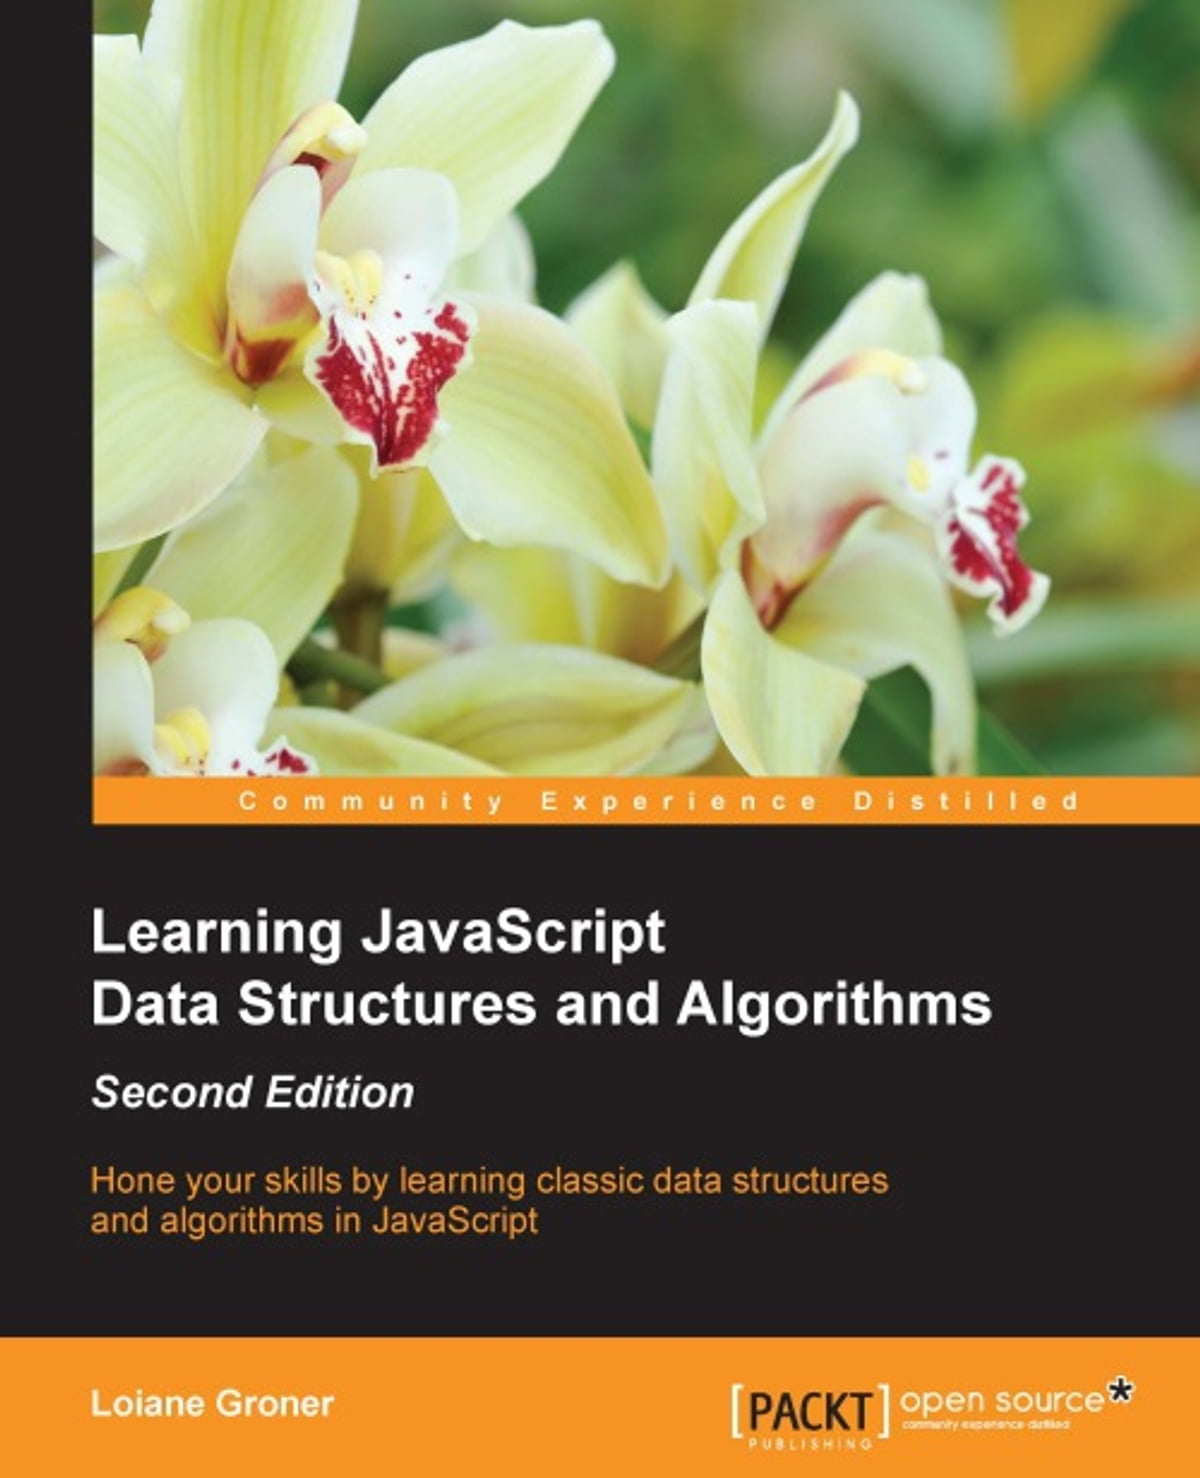 Learning JavaScript Data Structures and Algorithms - Second Edition eBook  by Loiane Groner - 9781783553884 | Rakuten Kobo